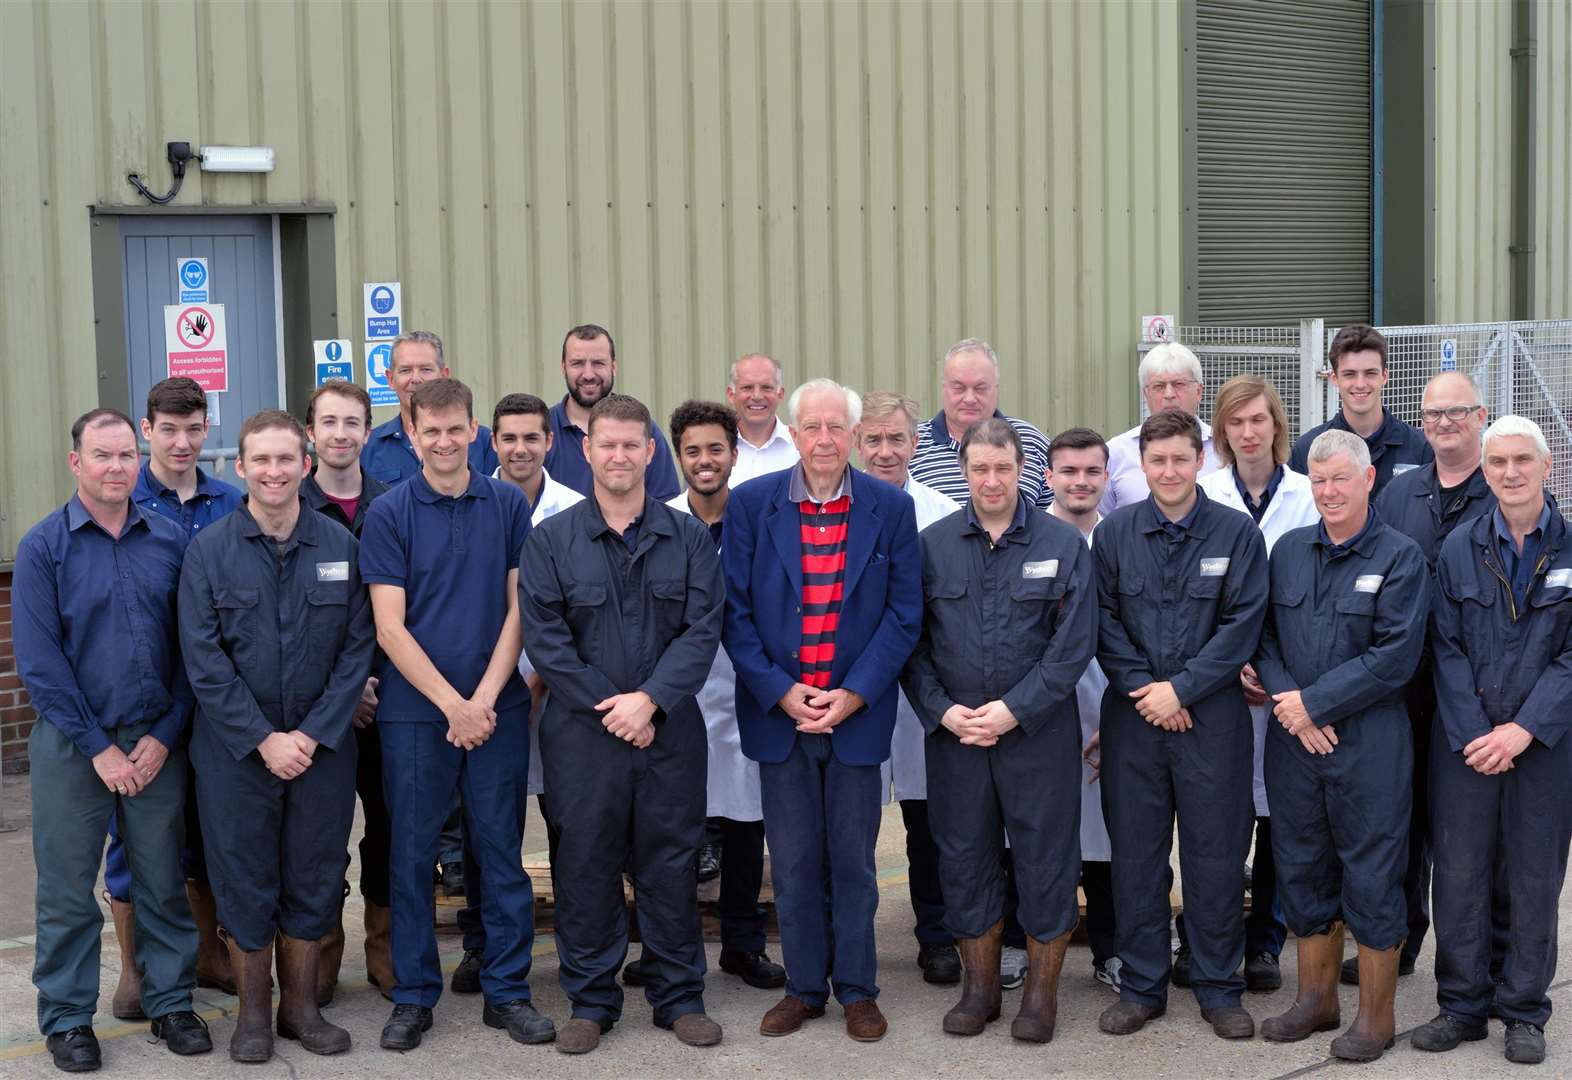 Market-leading chemical producer in Stradishall clocks up its 50th year